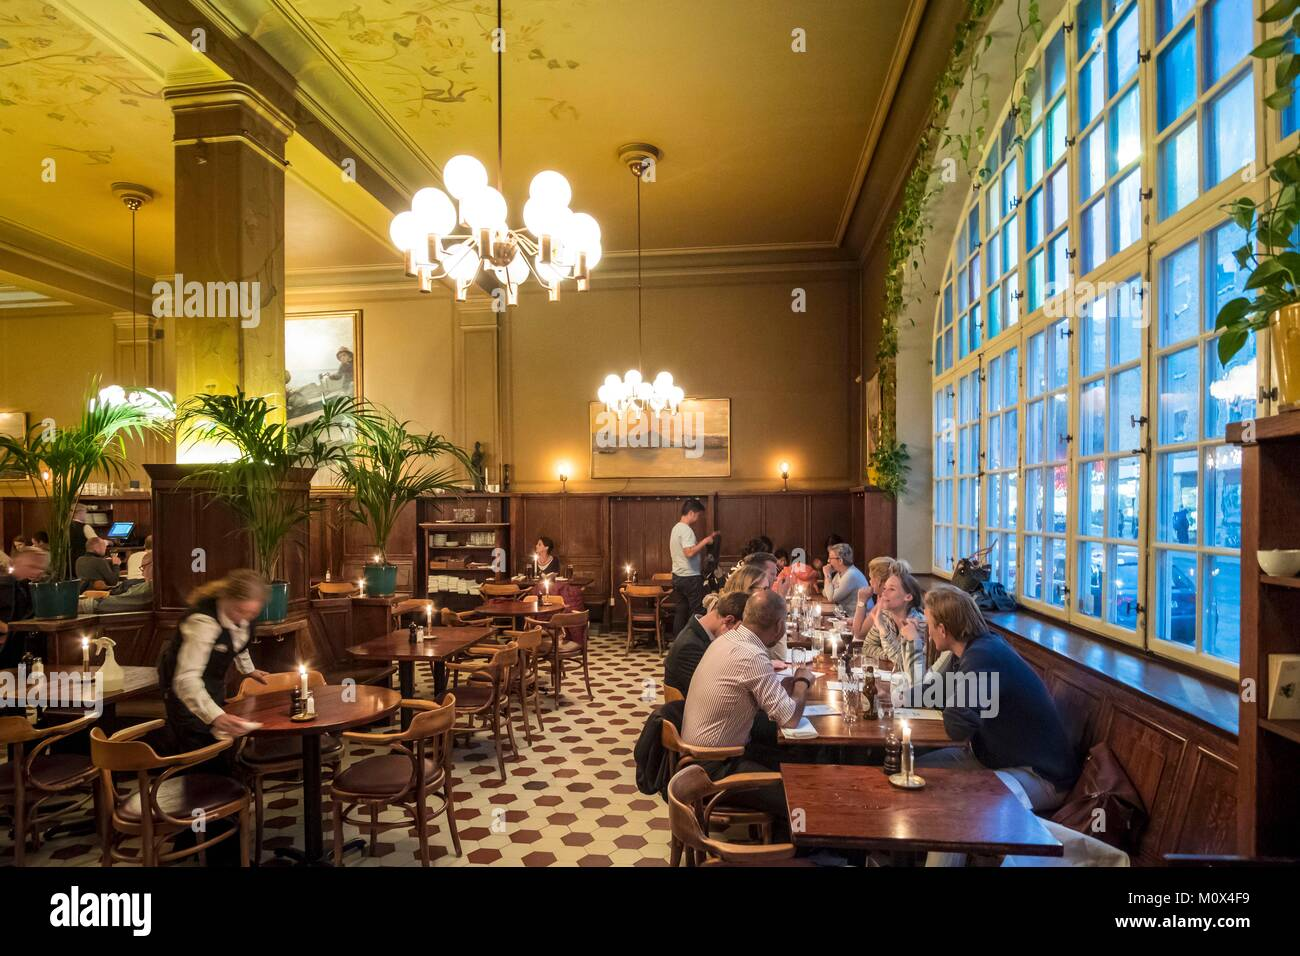 Sweden,Stockholm,island of Sodermalm,the Pelikan restaurant,centuries-old brewery Stock Photo